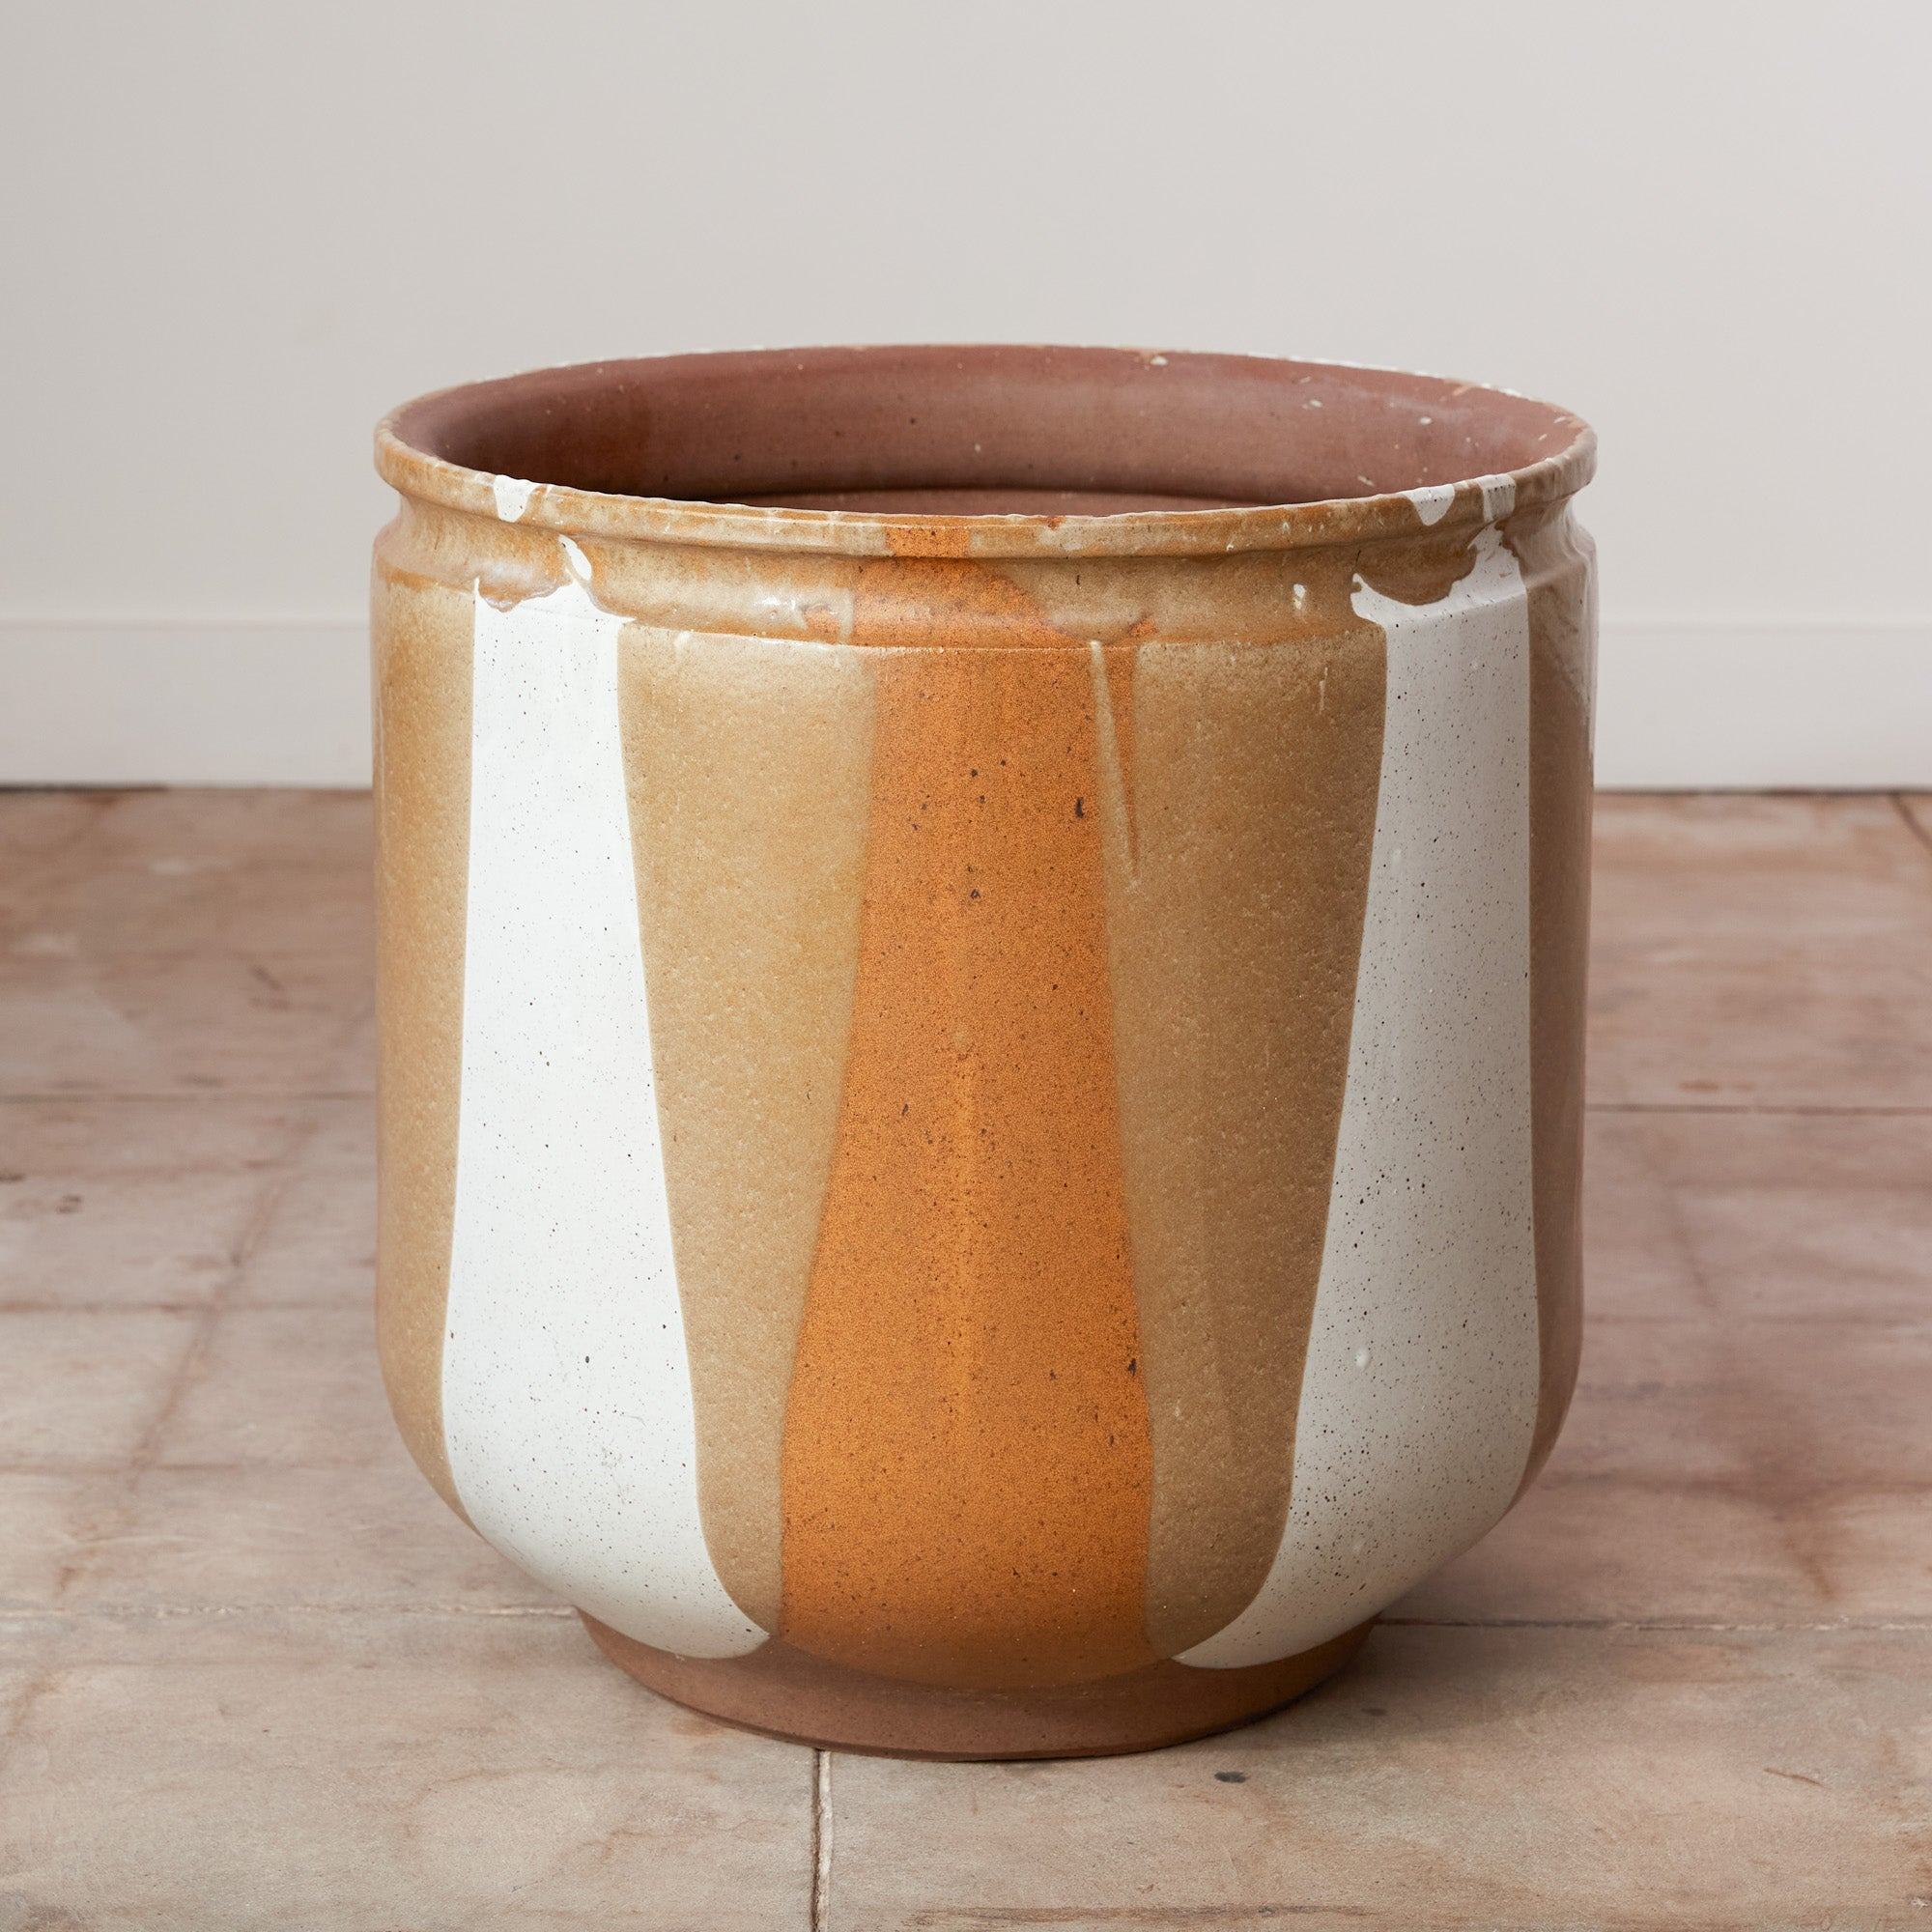 David Cressey Flame-Glazed Planter for Architectural Pottery